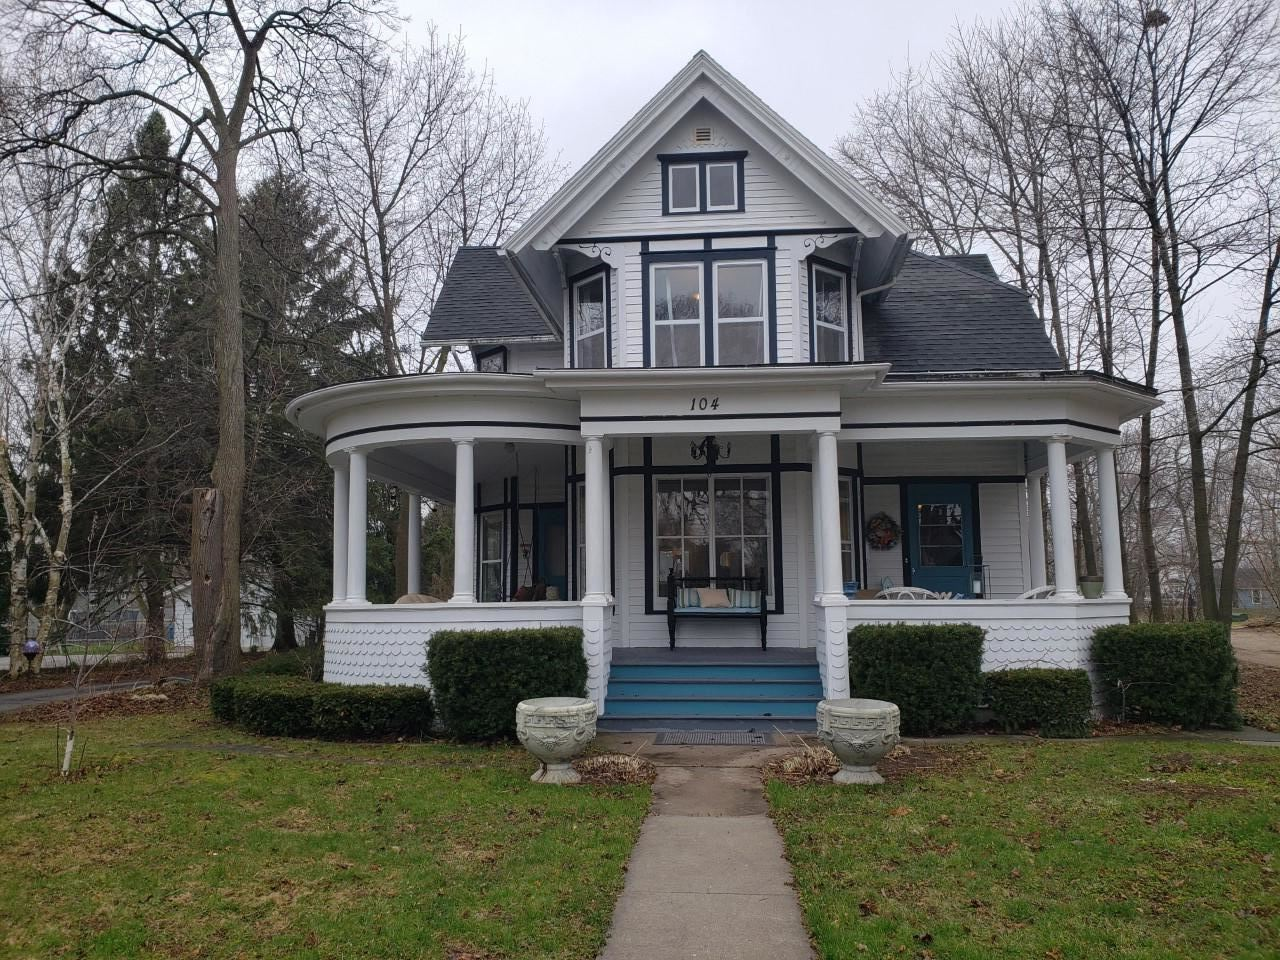 104 South St, Plymouth, WI 53073 - #: 1676723